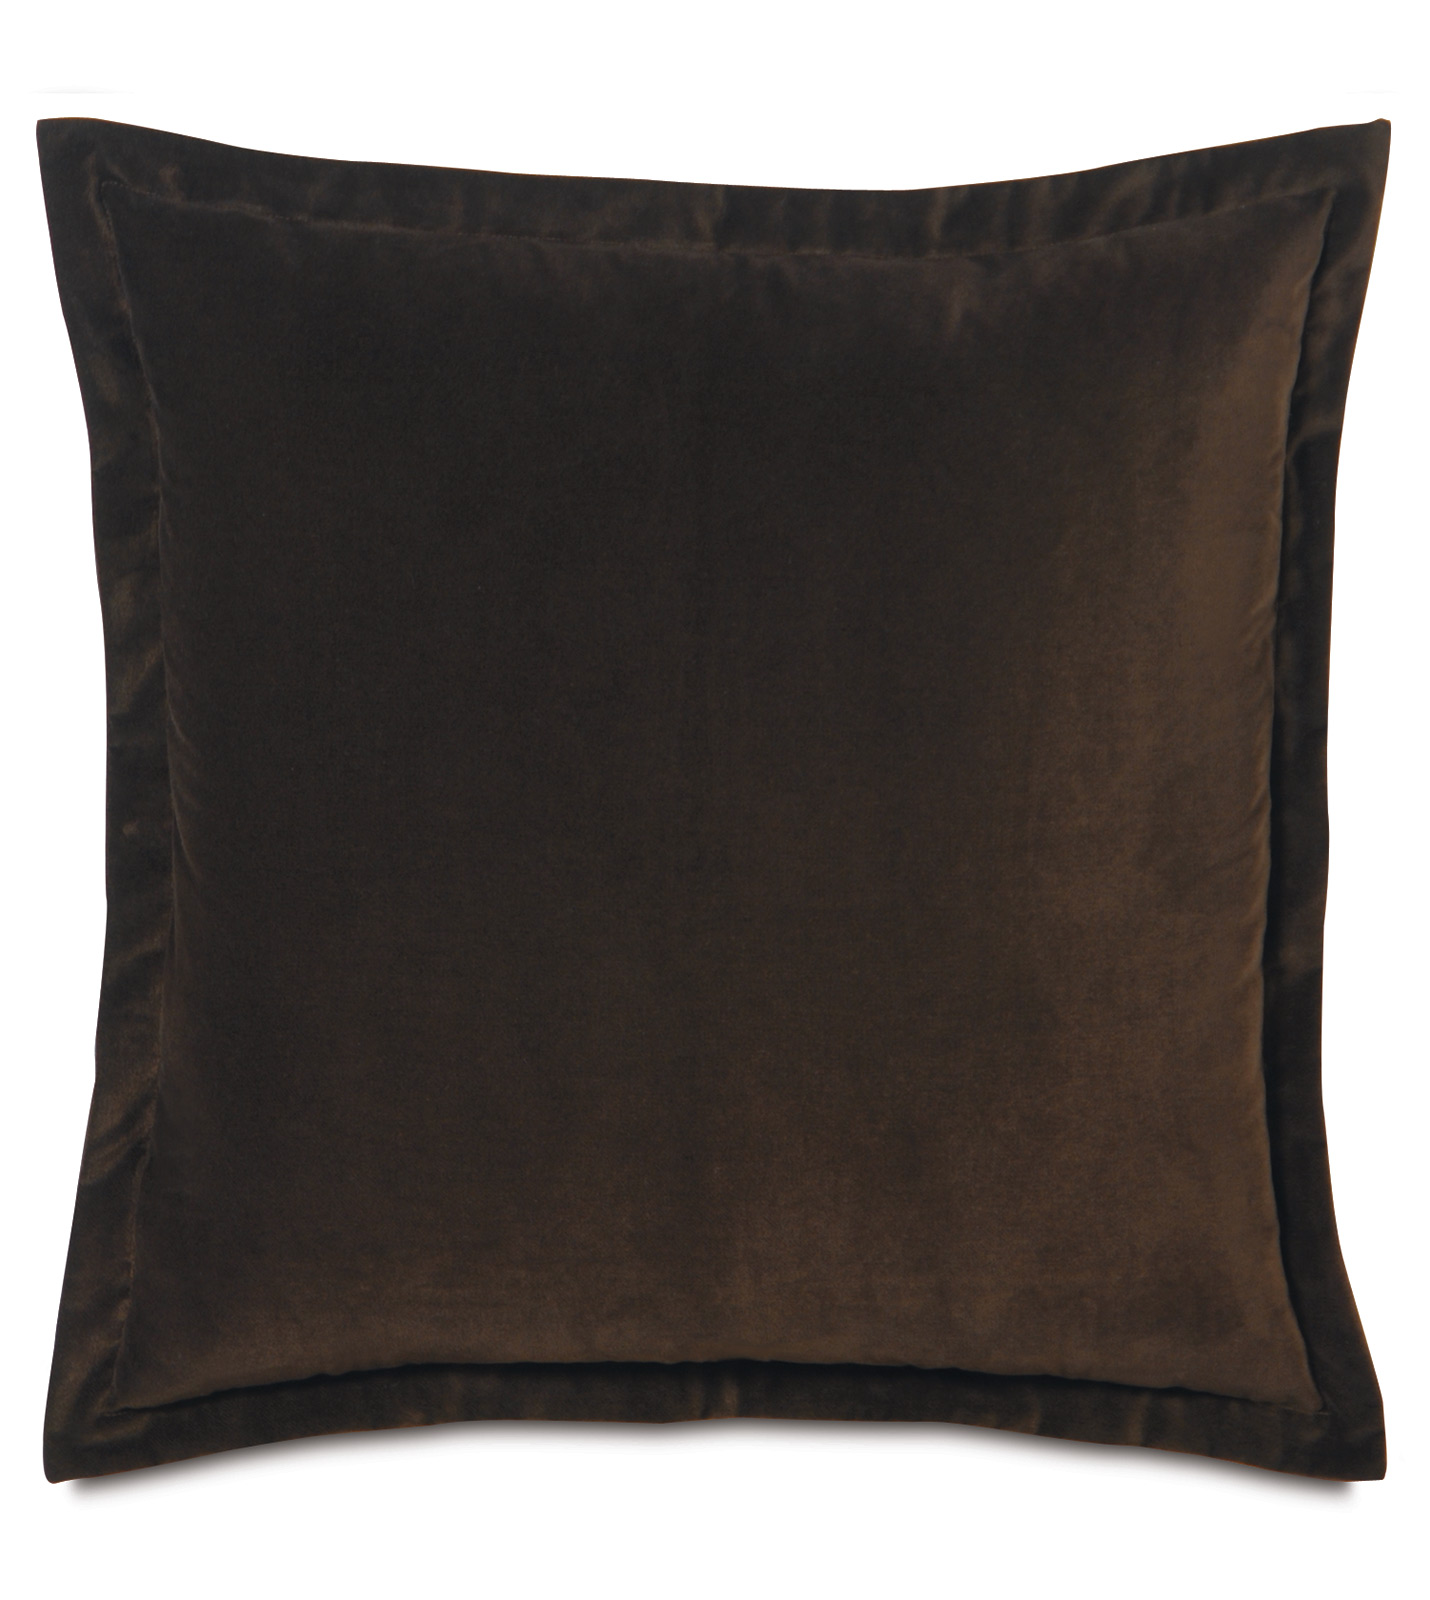 Decorative Pillow Brown : Belmont Home Decor Luxury Bedding - JACKSON BROWN EURO SHAM Luxury Bedding, Decorative Pillows ...